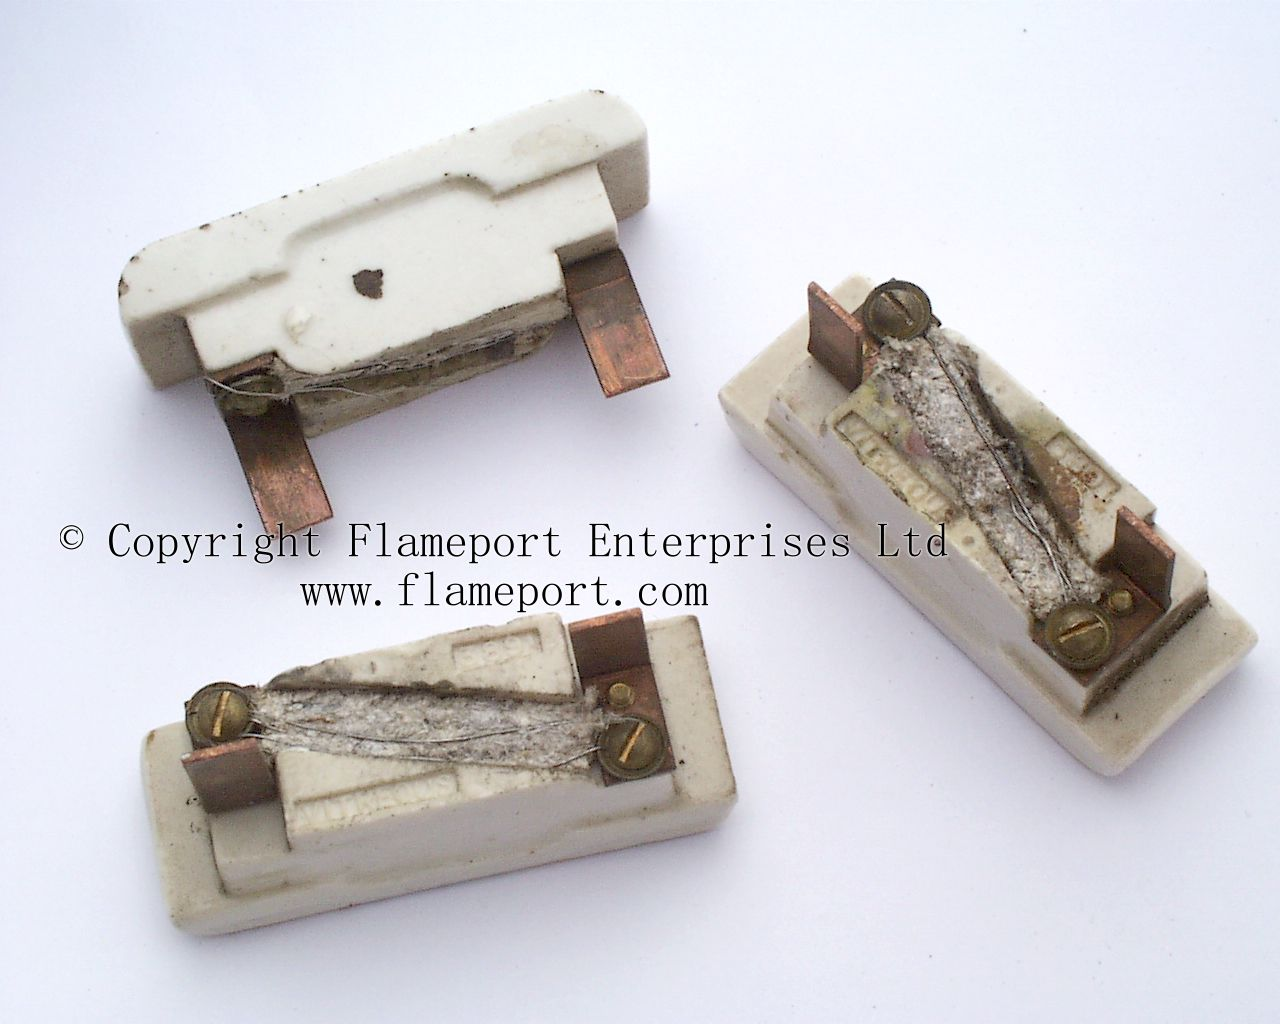 100 Old Fuse Box Revo 15 Amp Electrical Splitter Unit With Cast Iron Casing